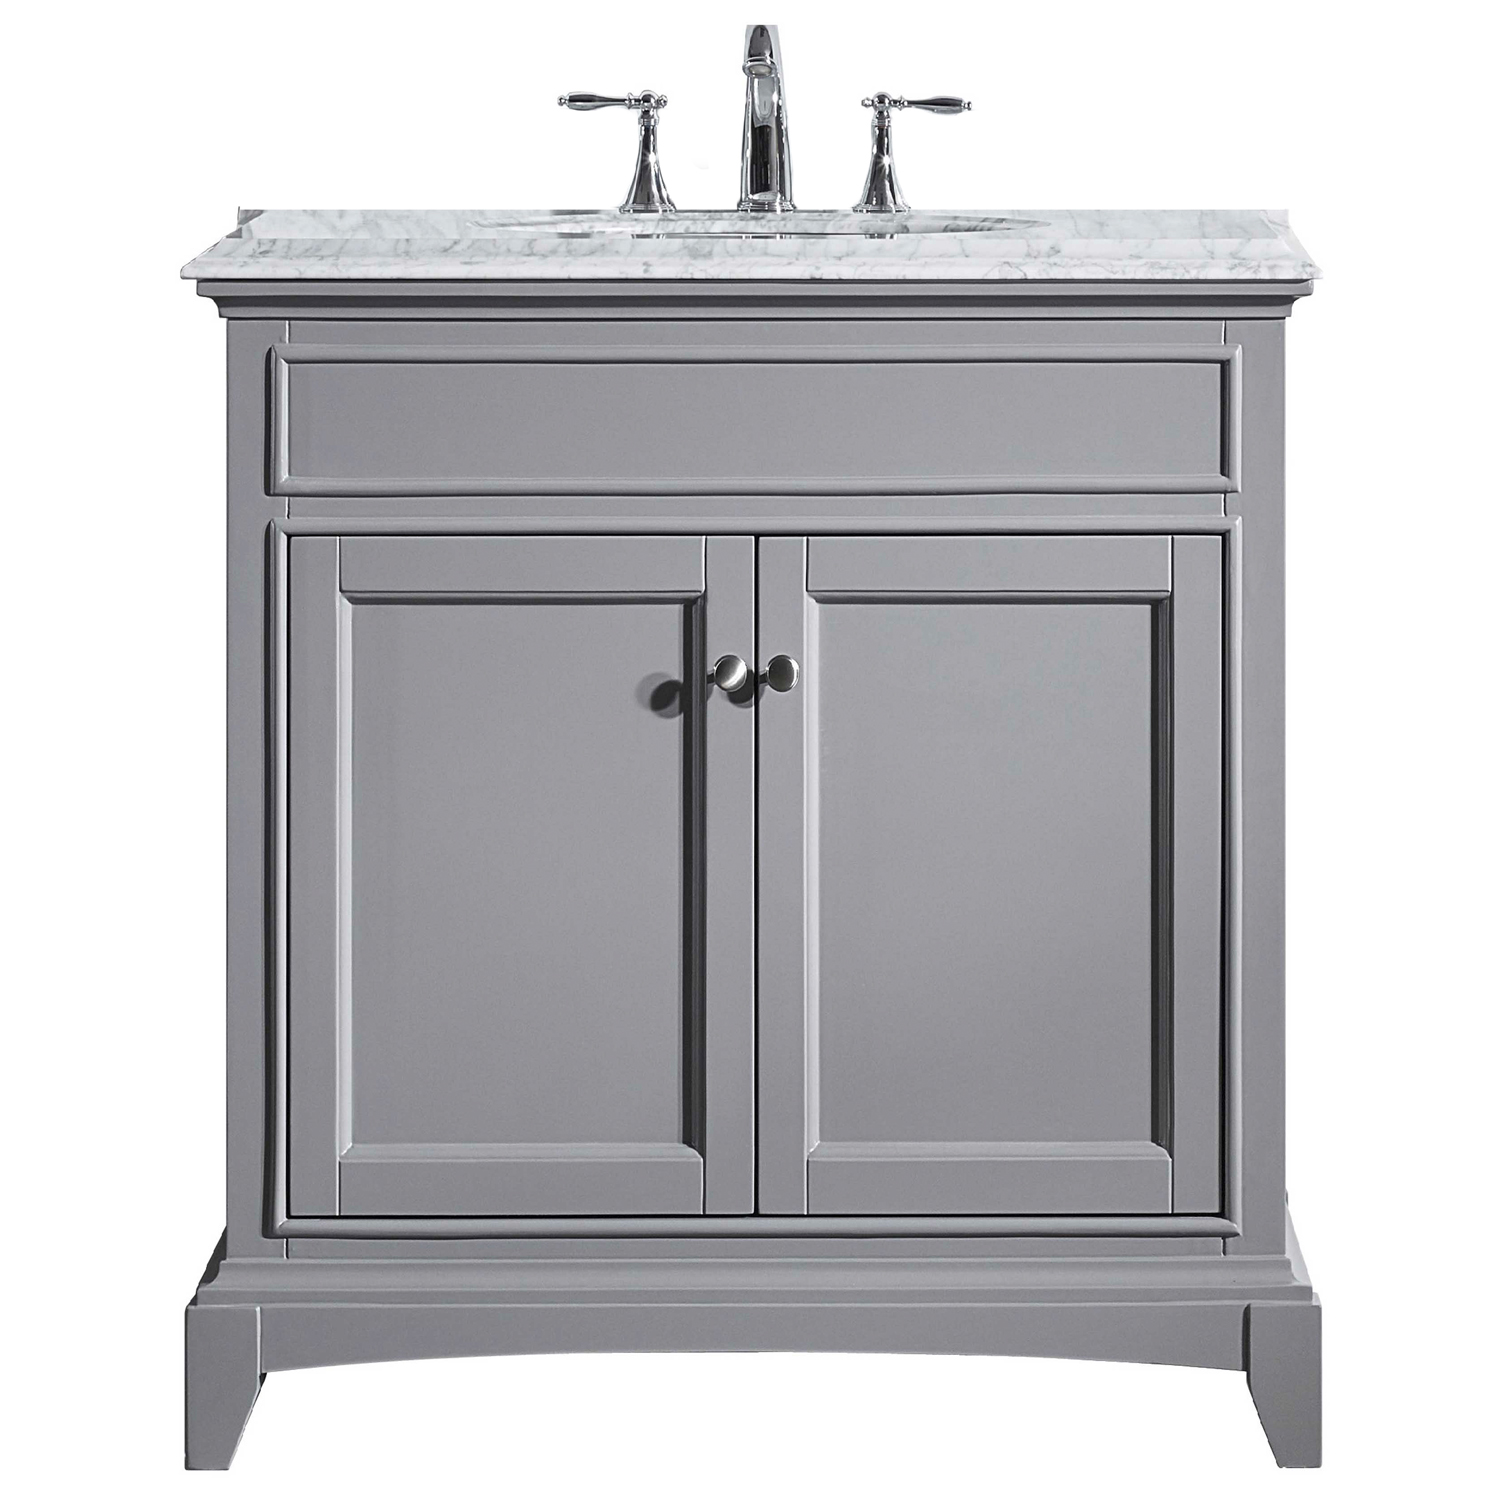 Eviva Elite Stamford 30″ Gray Solid Wood Bathroom Vanity Set with Double OG White Carrera Marble Top & White Undermount Porcelain Sink